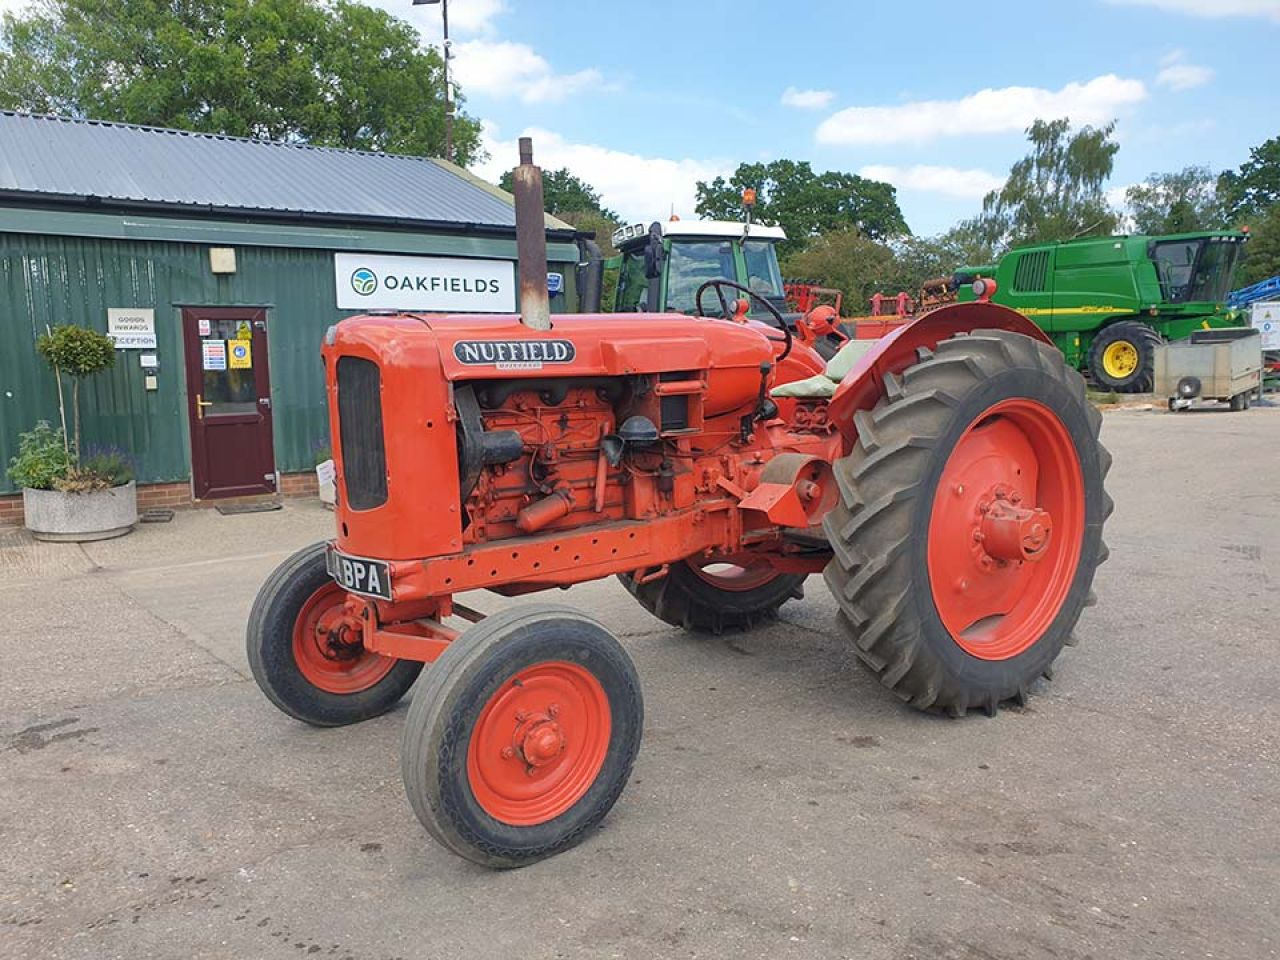 1956 NUFFIELD UNIVERSAL DM4 2WD TRACTOR